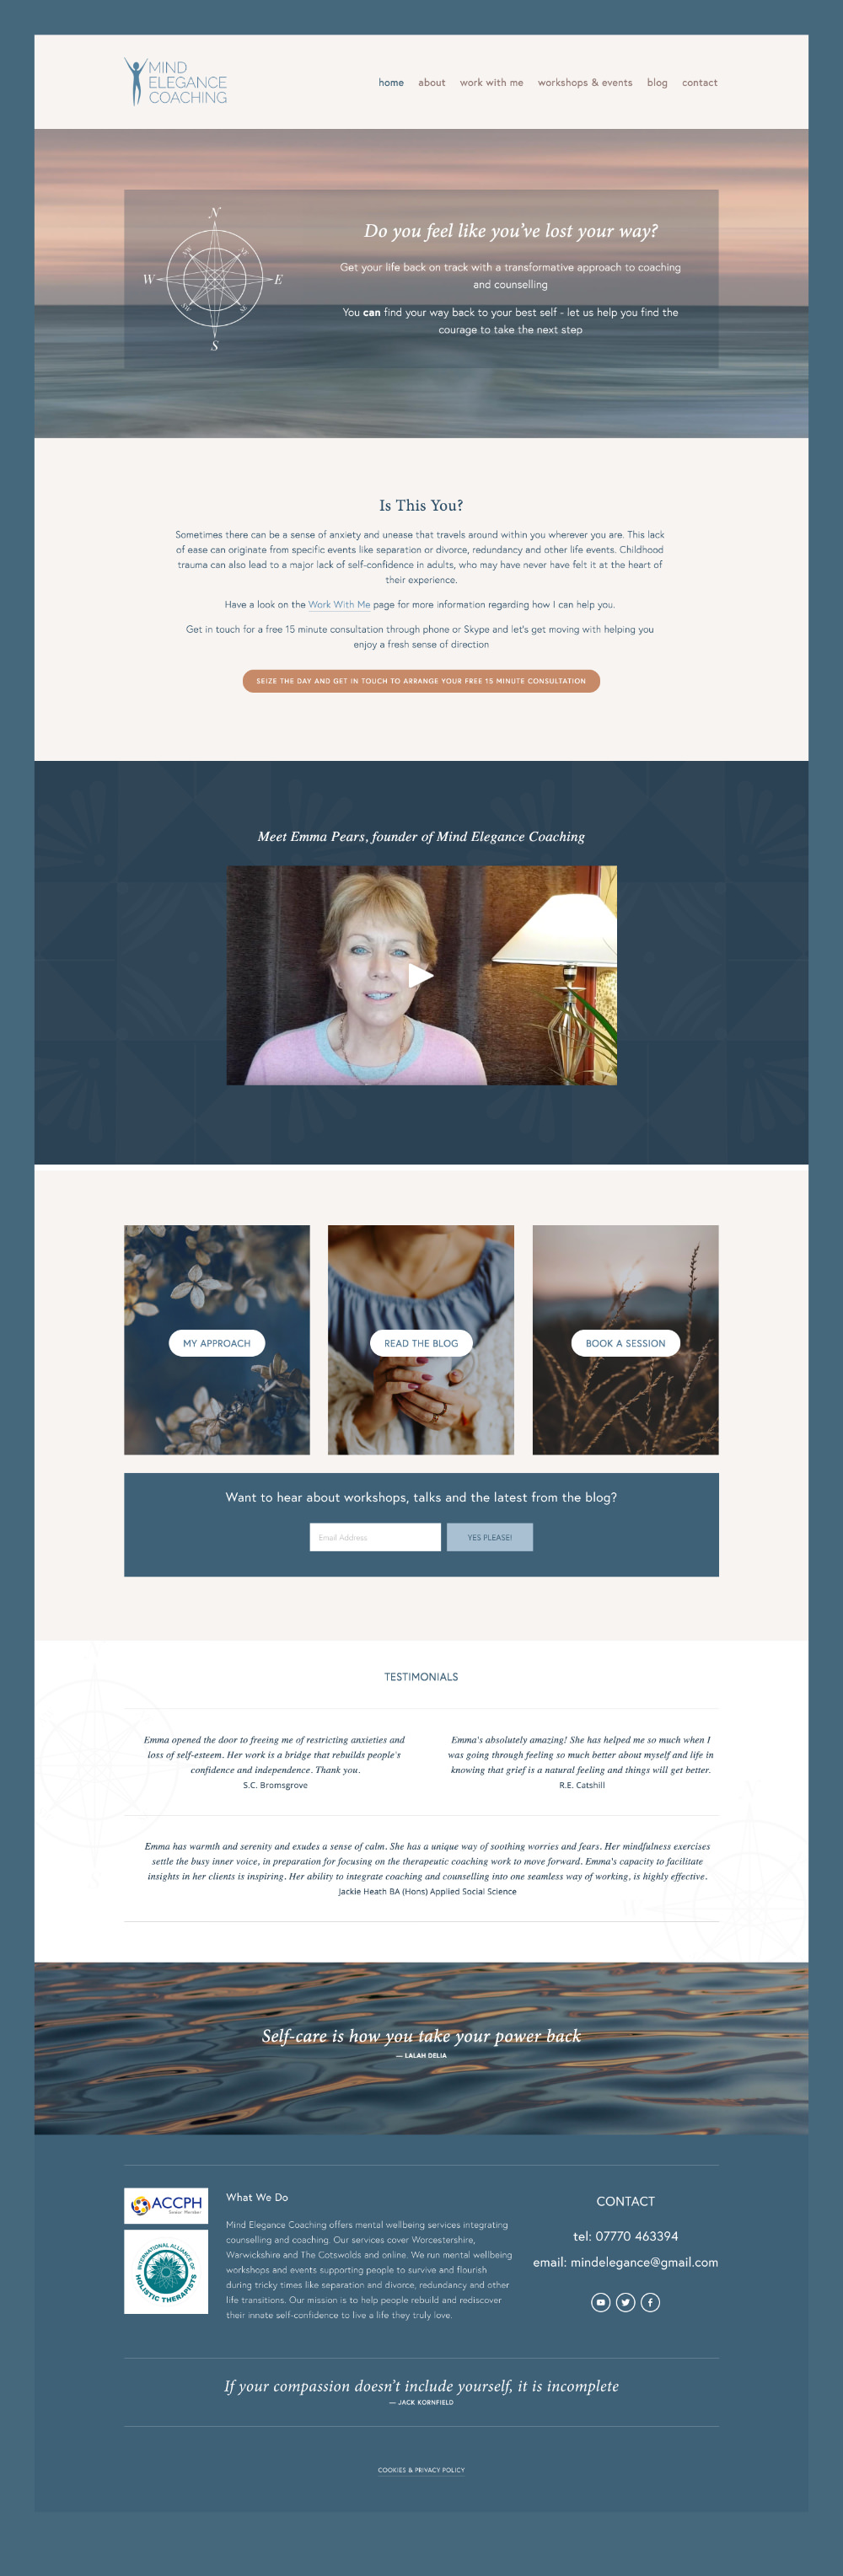 web design for counsellor and coach